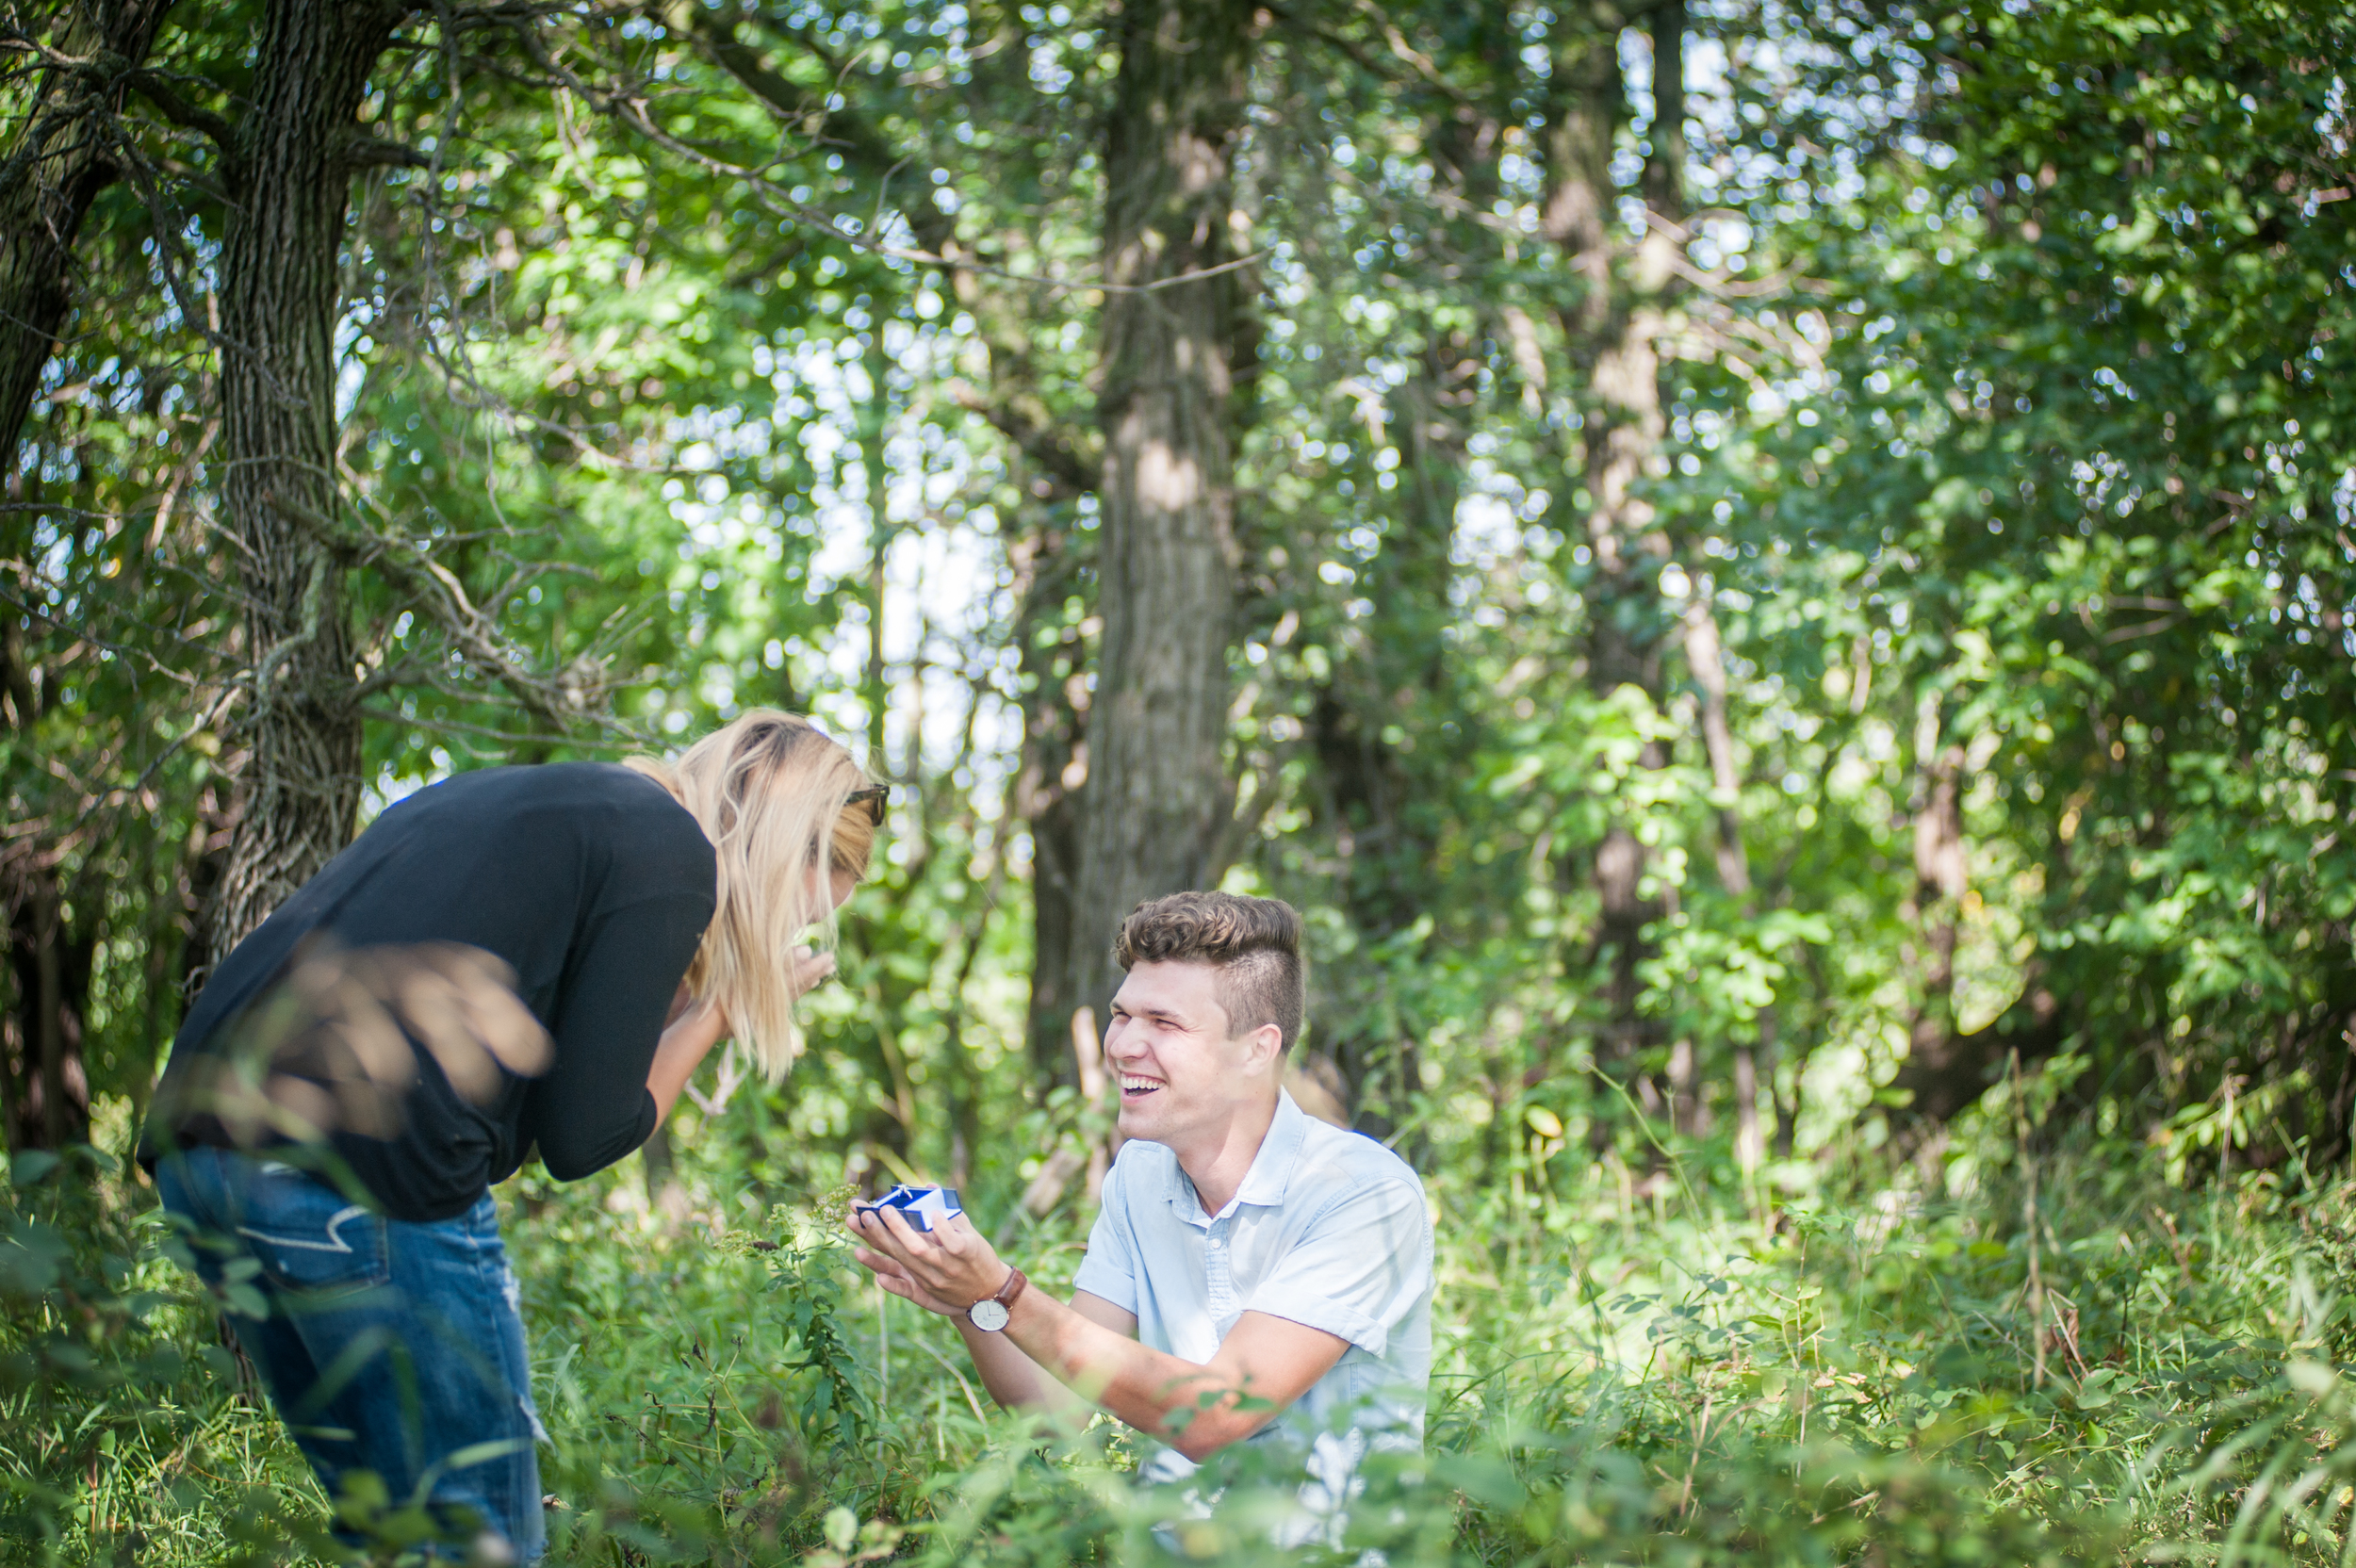 Our engagement was photographed live by our friends at WJB Photography.